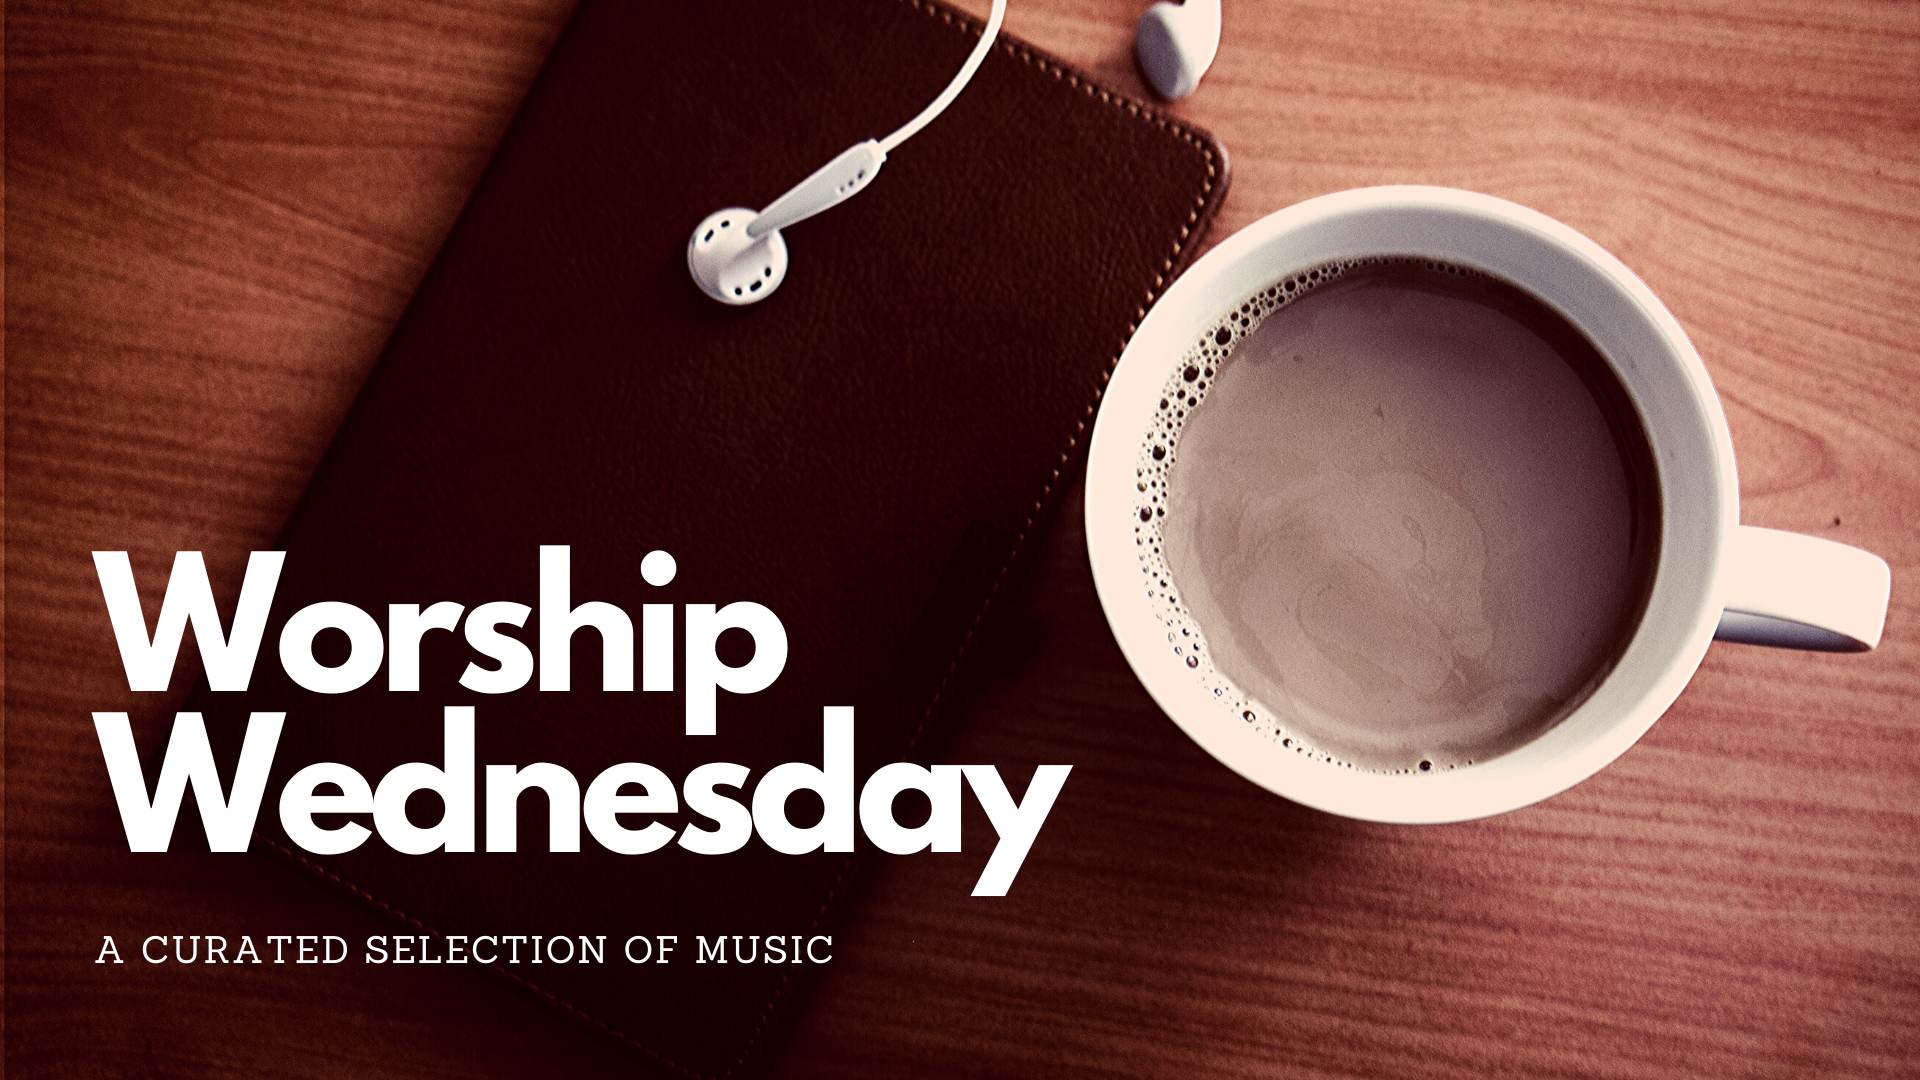 Worship Wednesday image